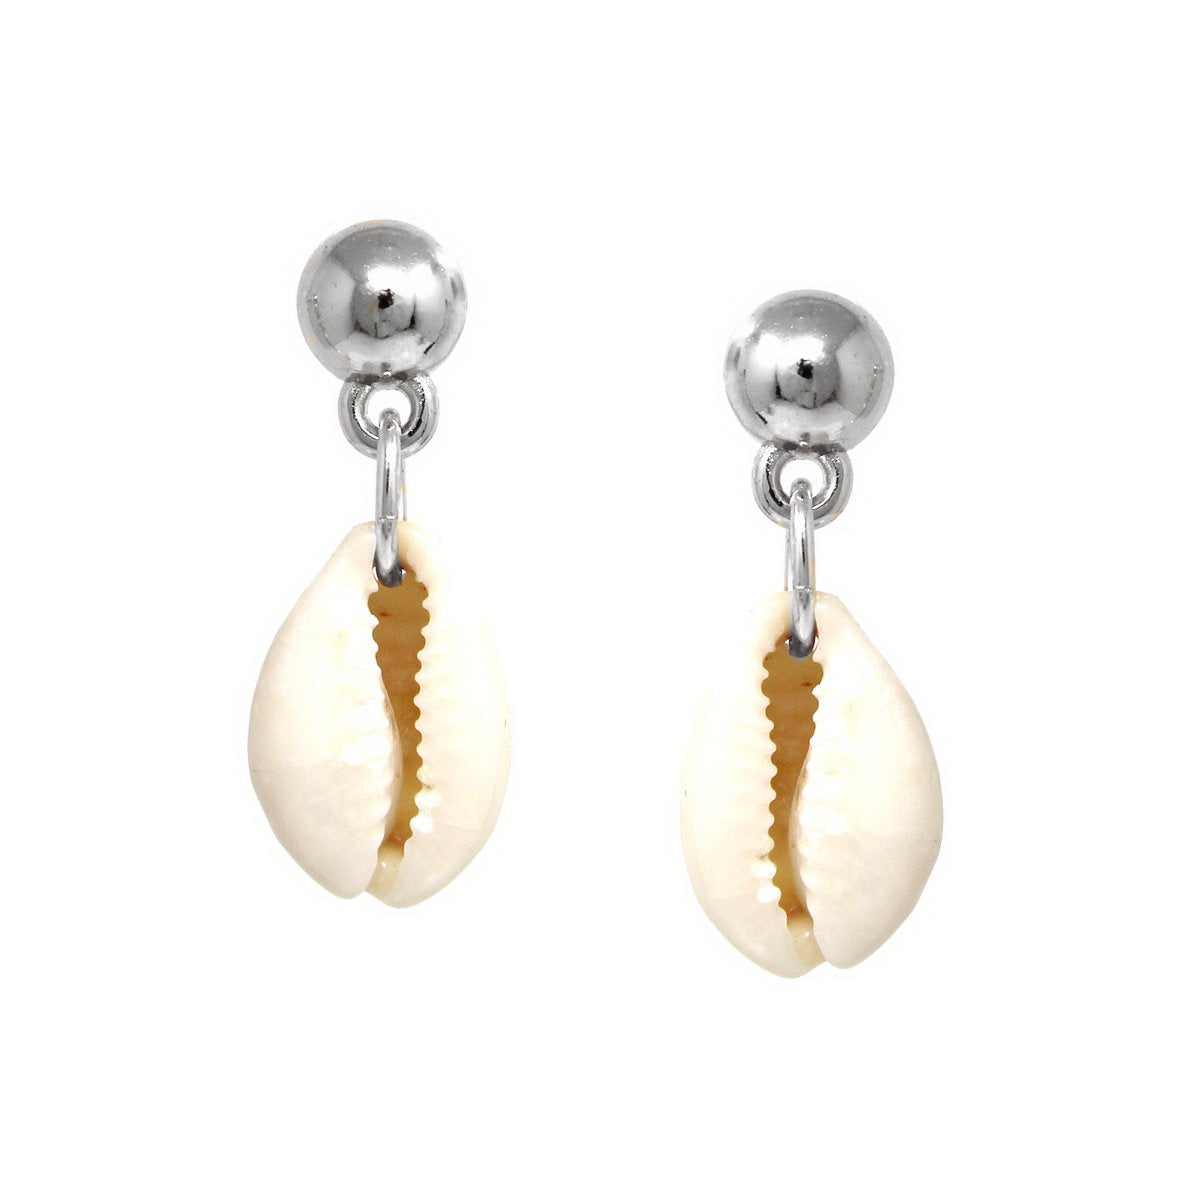 Metal Ball With Puka Shell Drop Earrings